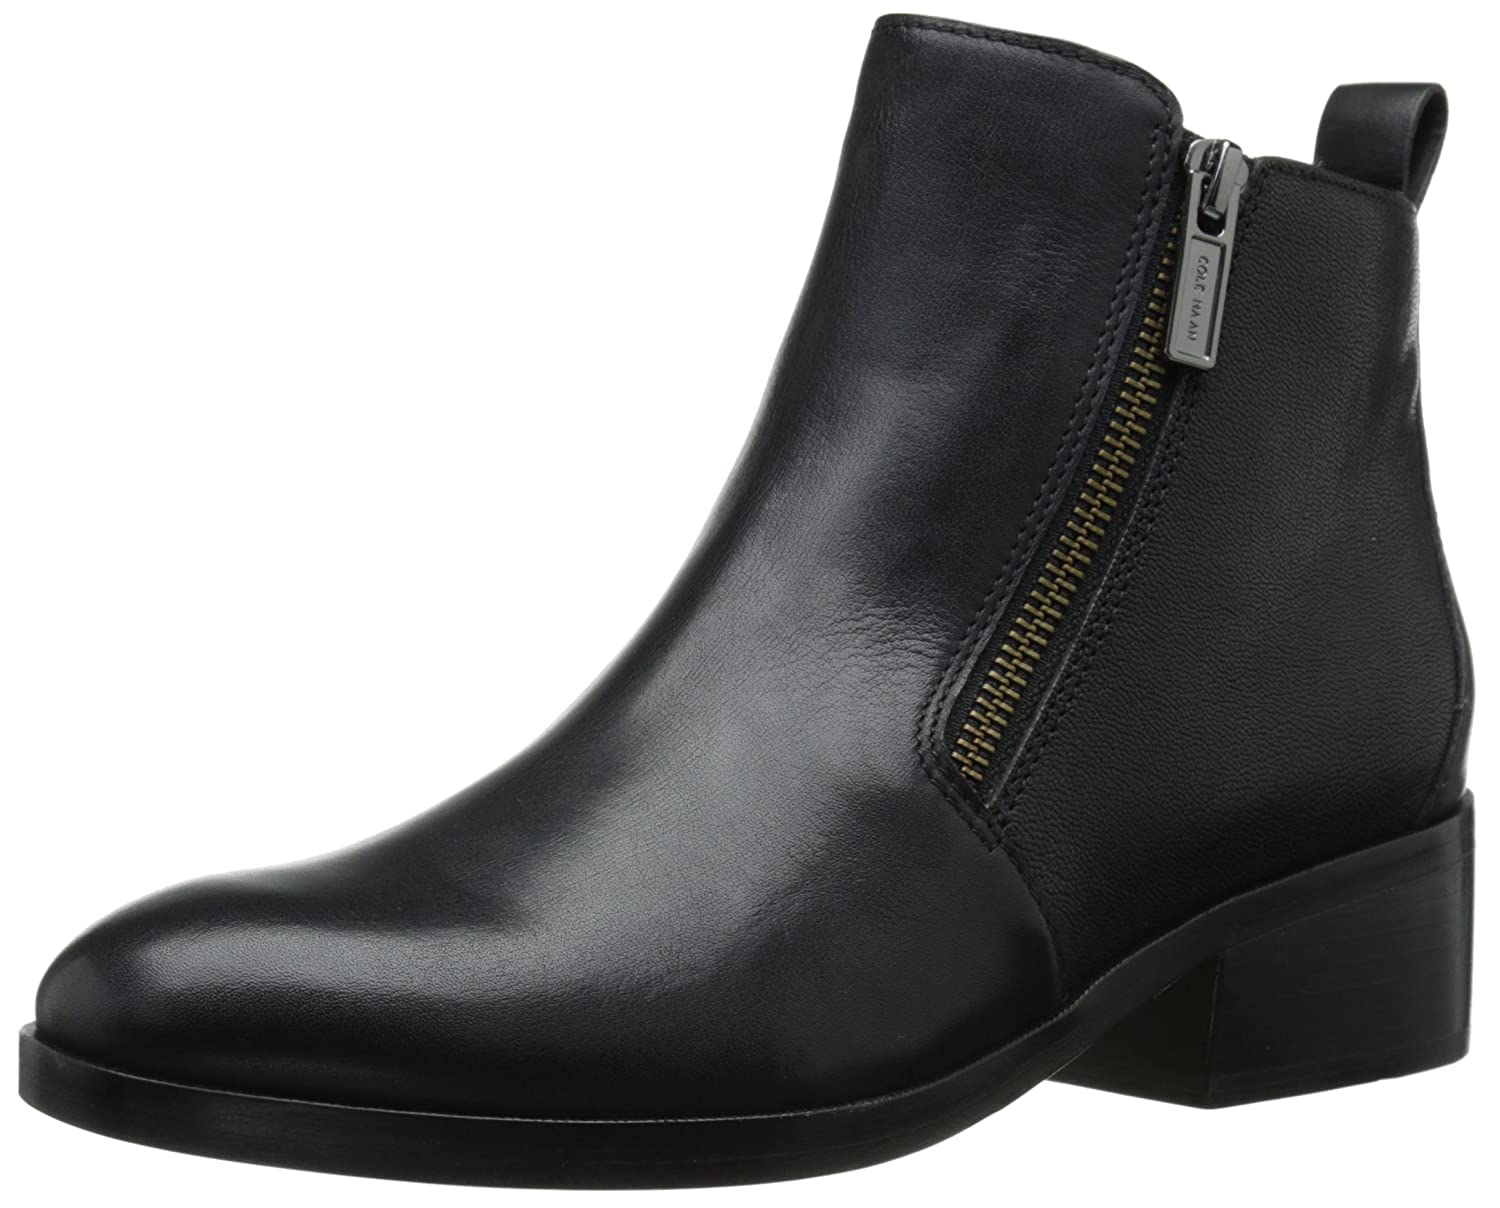 Cole Haan Women's Oak Boot B00YDY1V8O 10 B(M) US|Black Leather